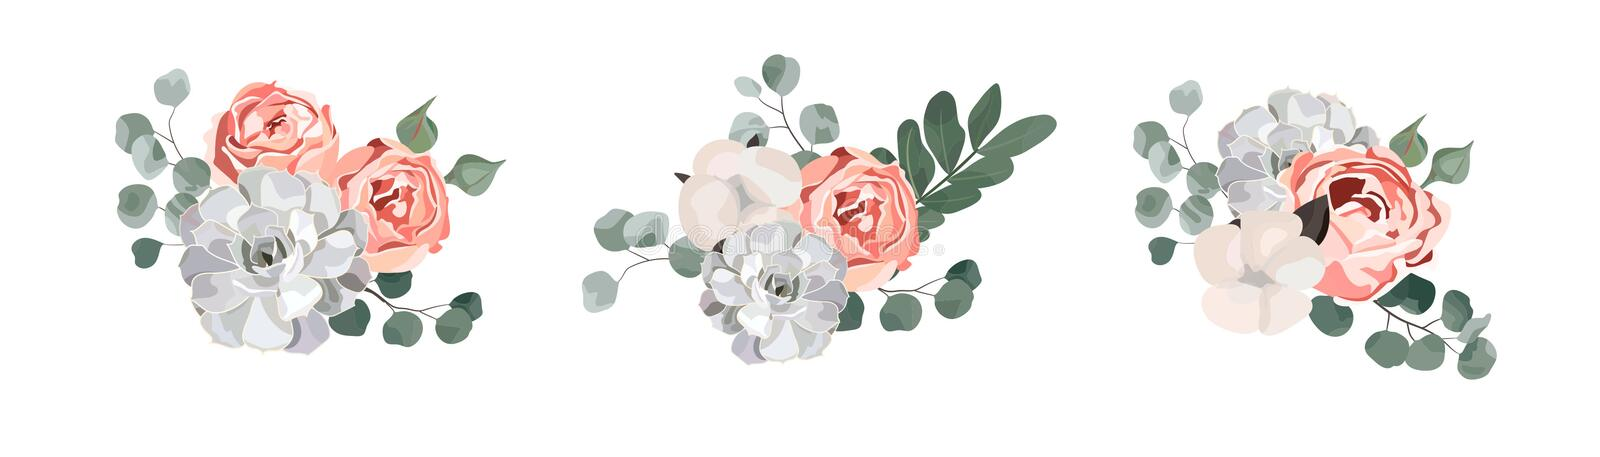 Floral bouquet design: garden pink rose cotton, succulent, eucalyptus branch greenery leaves stock illustration